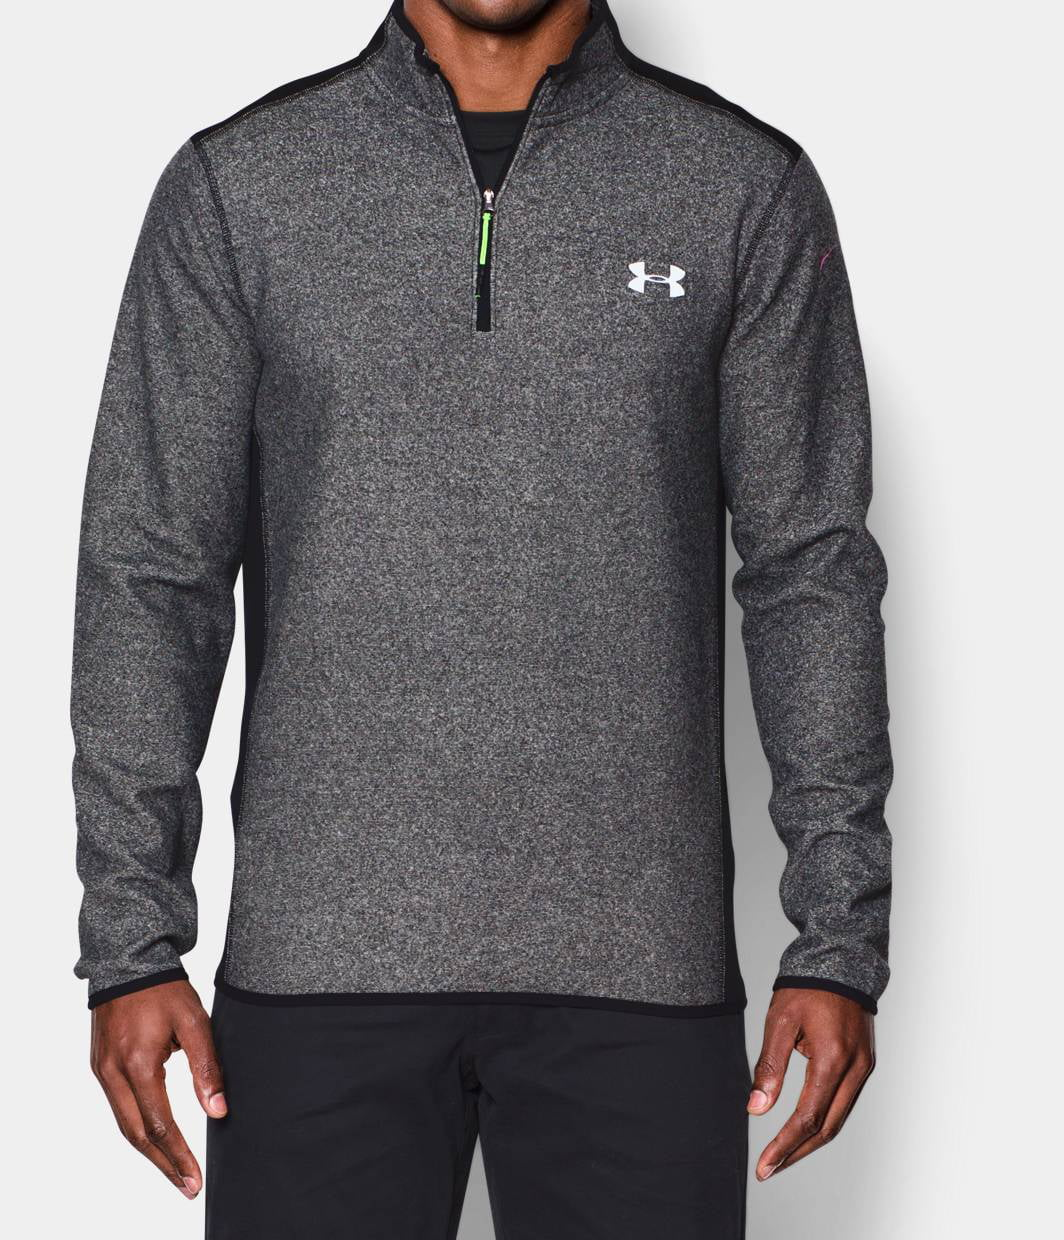 Edeal apparel on walmart marketplace marketplace pulse for Under armour shirts at walmart